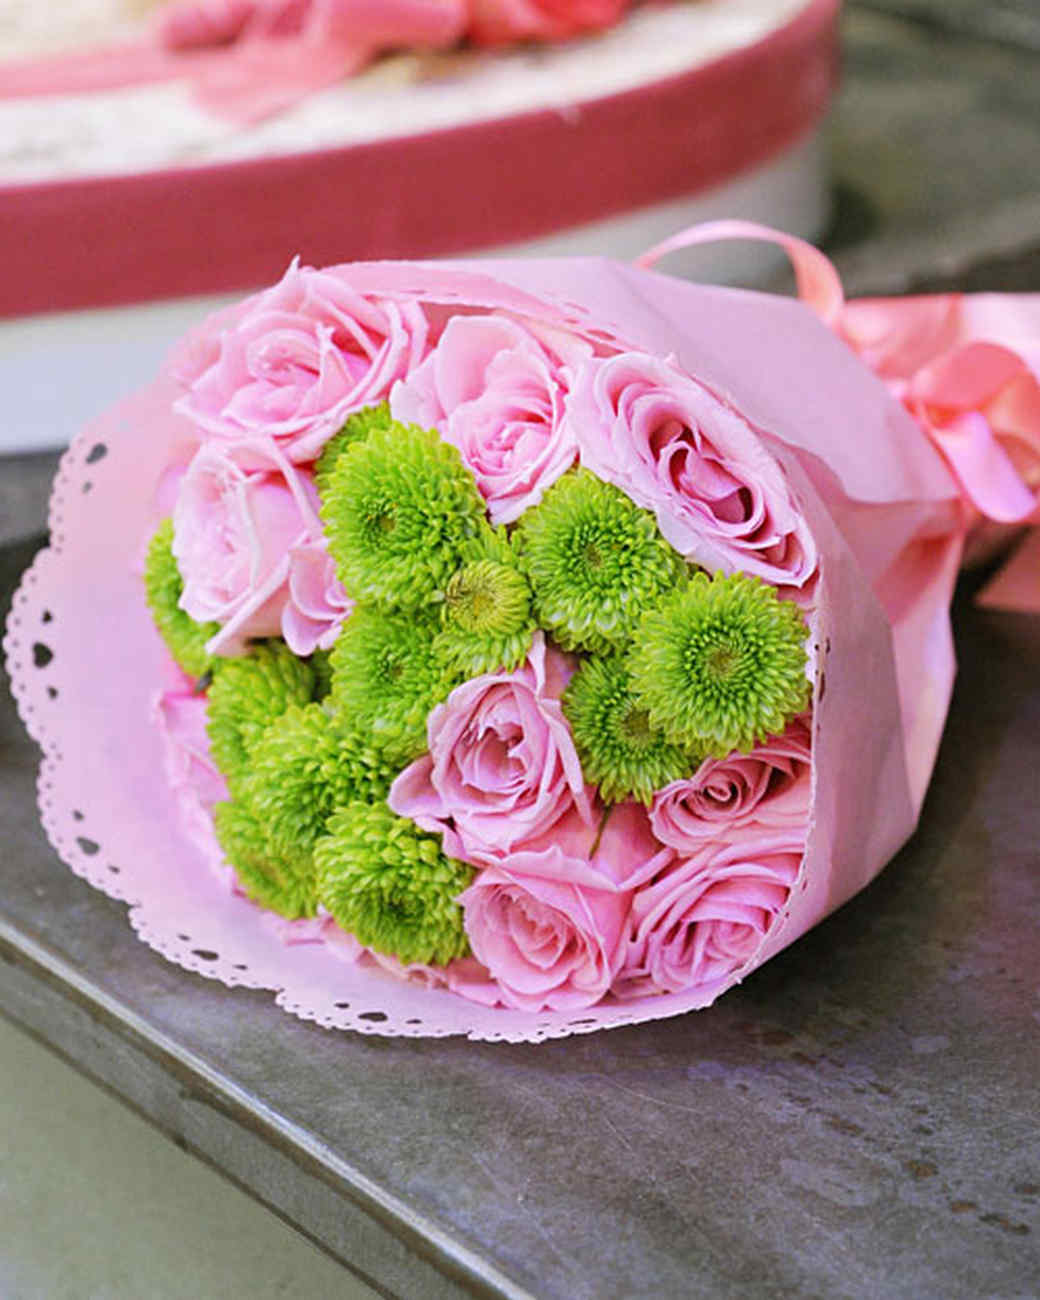 Boosting Store-Bought Bouquets for Valentine's Day